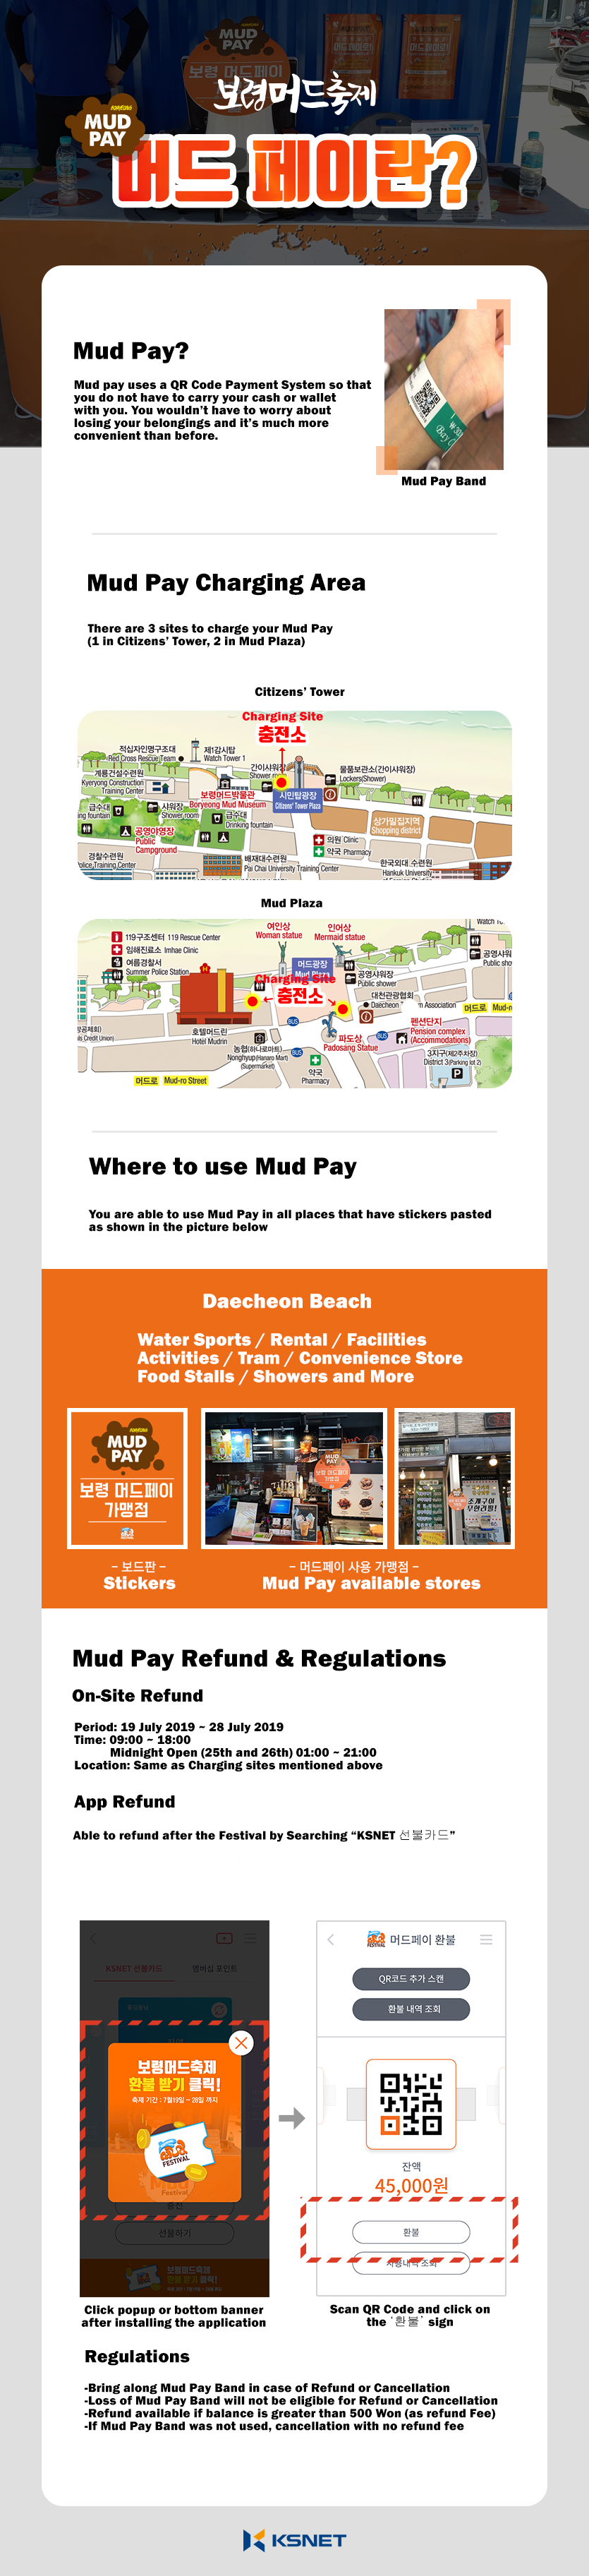 Mud Pay - make your payments easier, faster, and safer